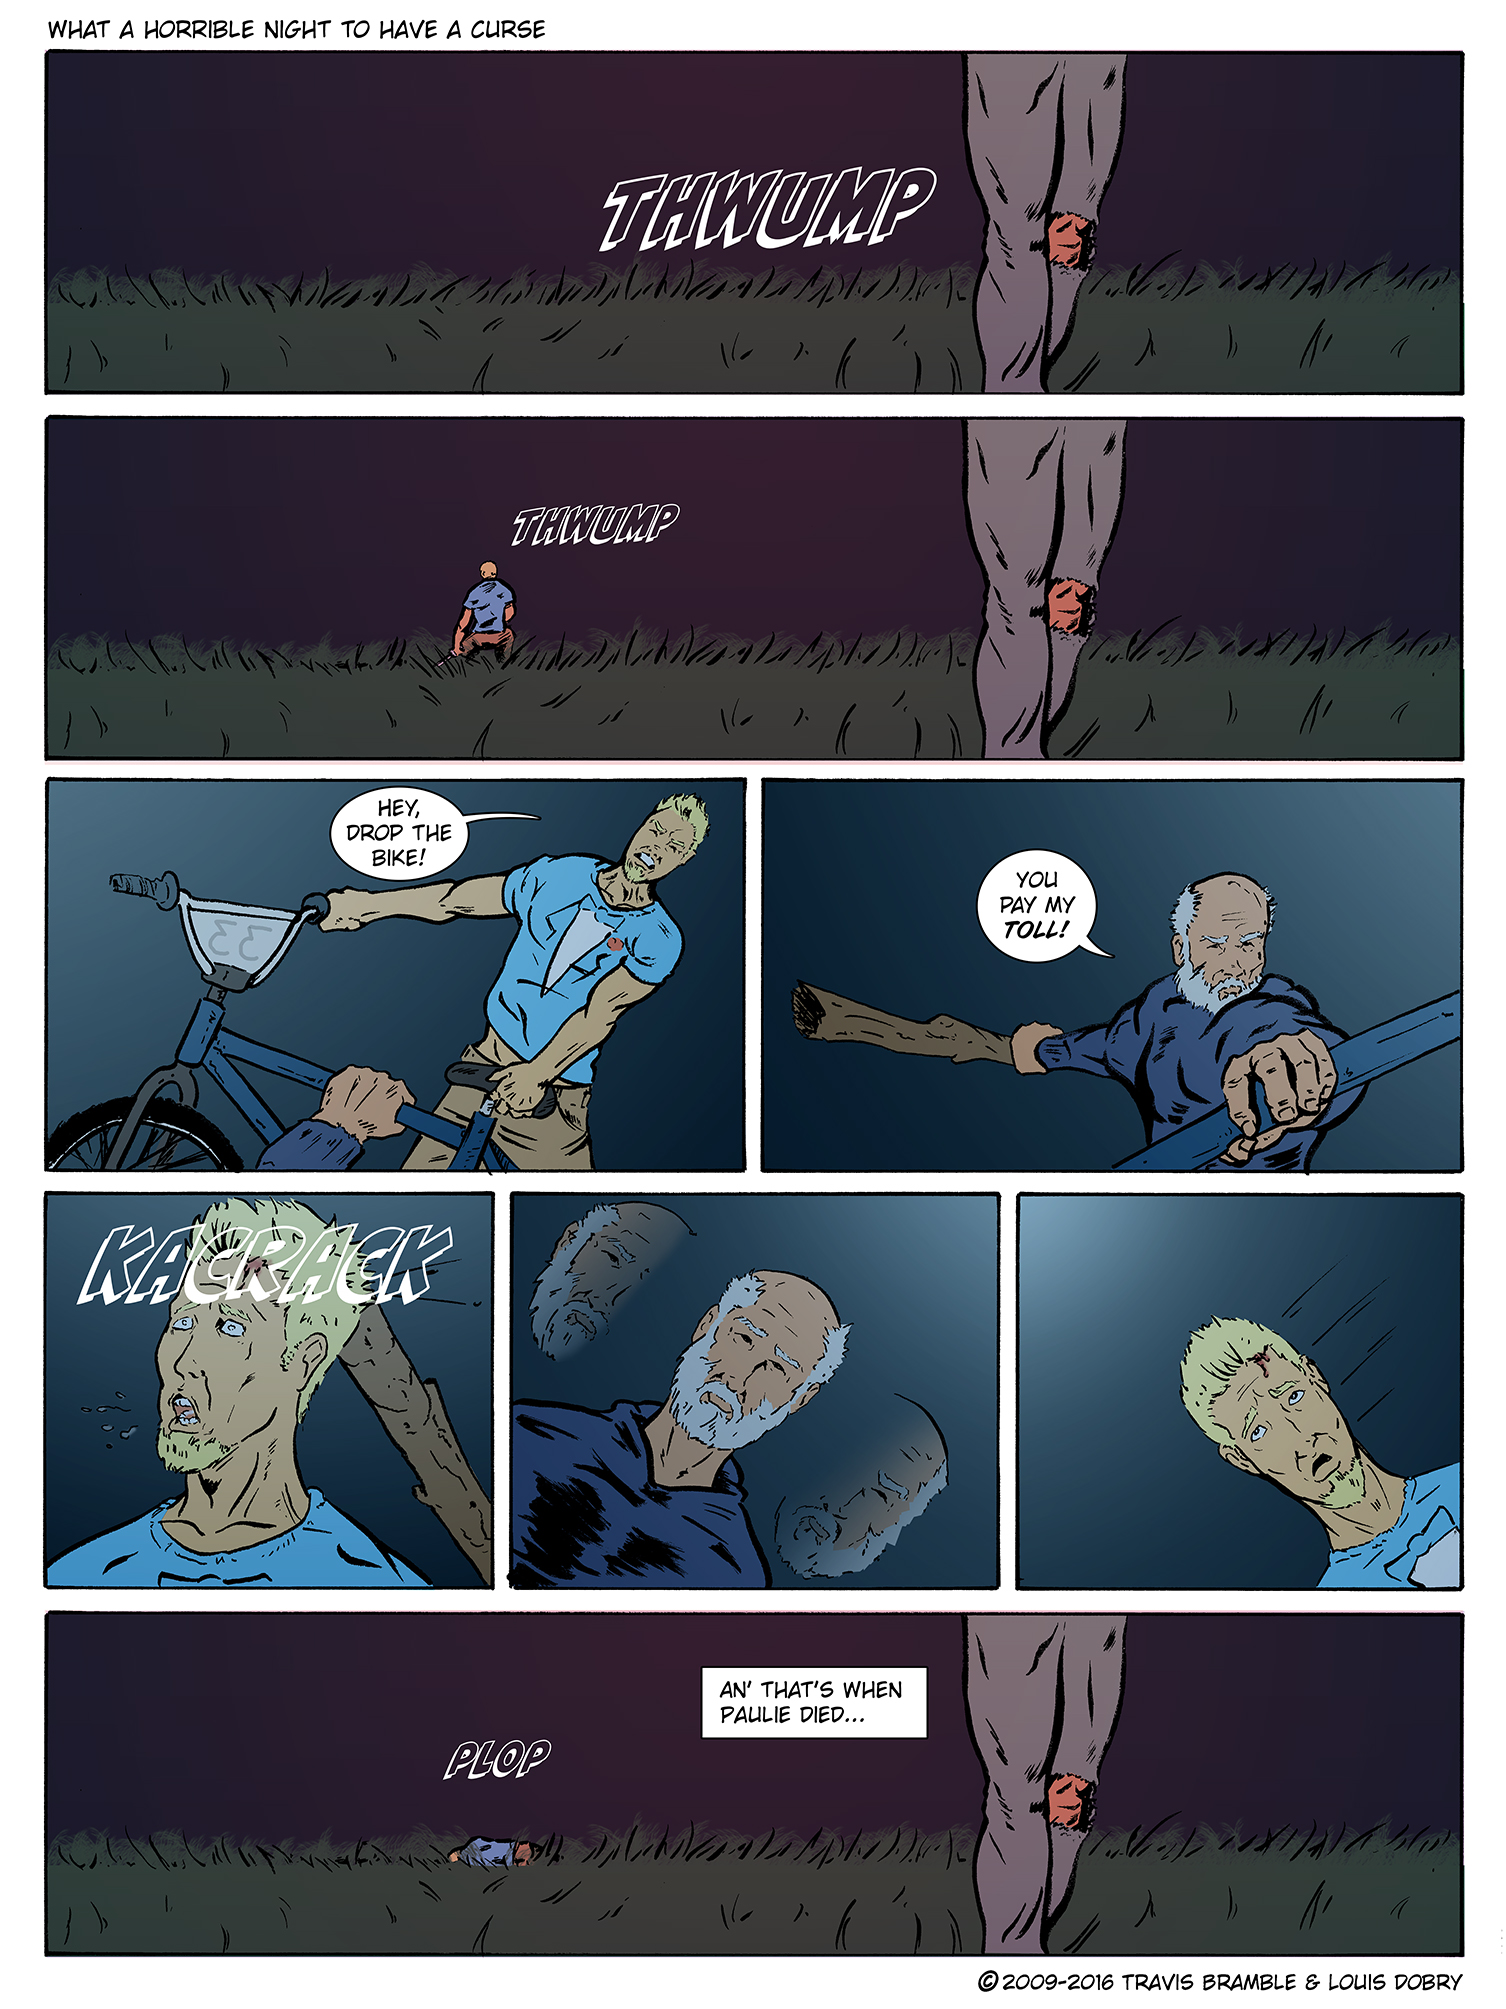 What A Horrible Night To Have A Curse pg. 4